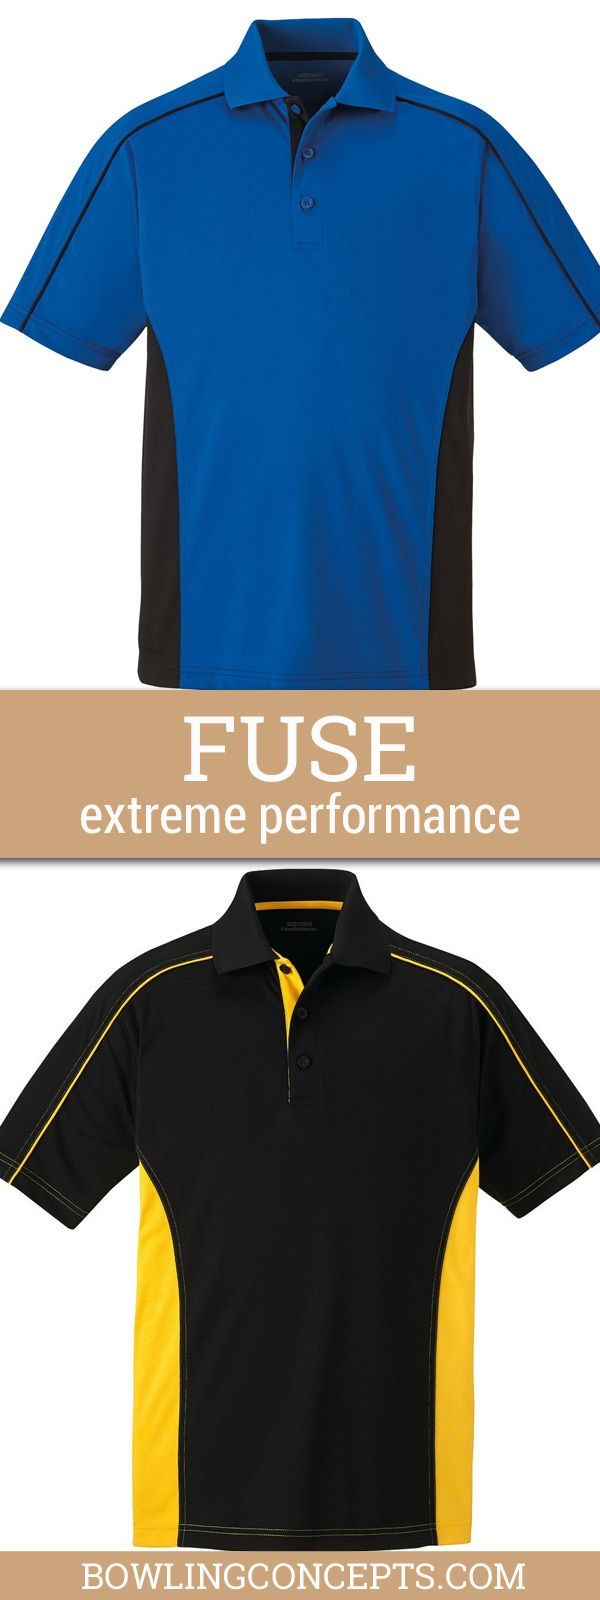 Mens Side Color-Block Moisture Wicking Sport Polo Shirt. Look calm and cool in this high tech extreme e-performance shirt, add you name, team or logo for 'your' game.